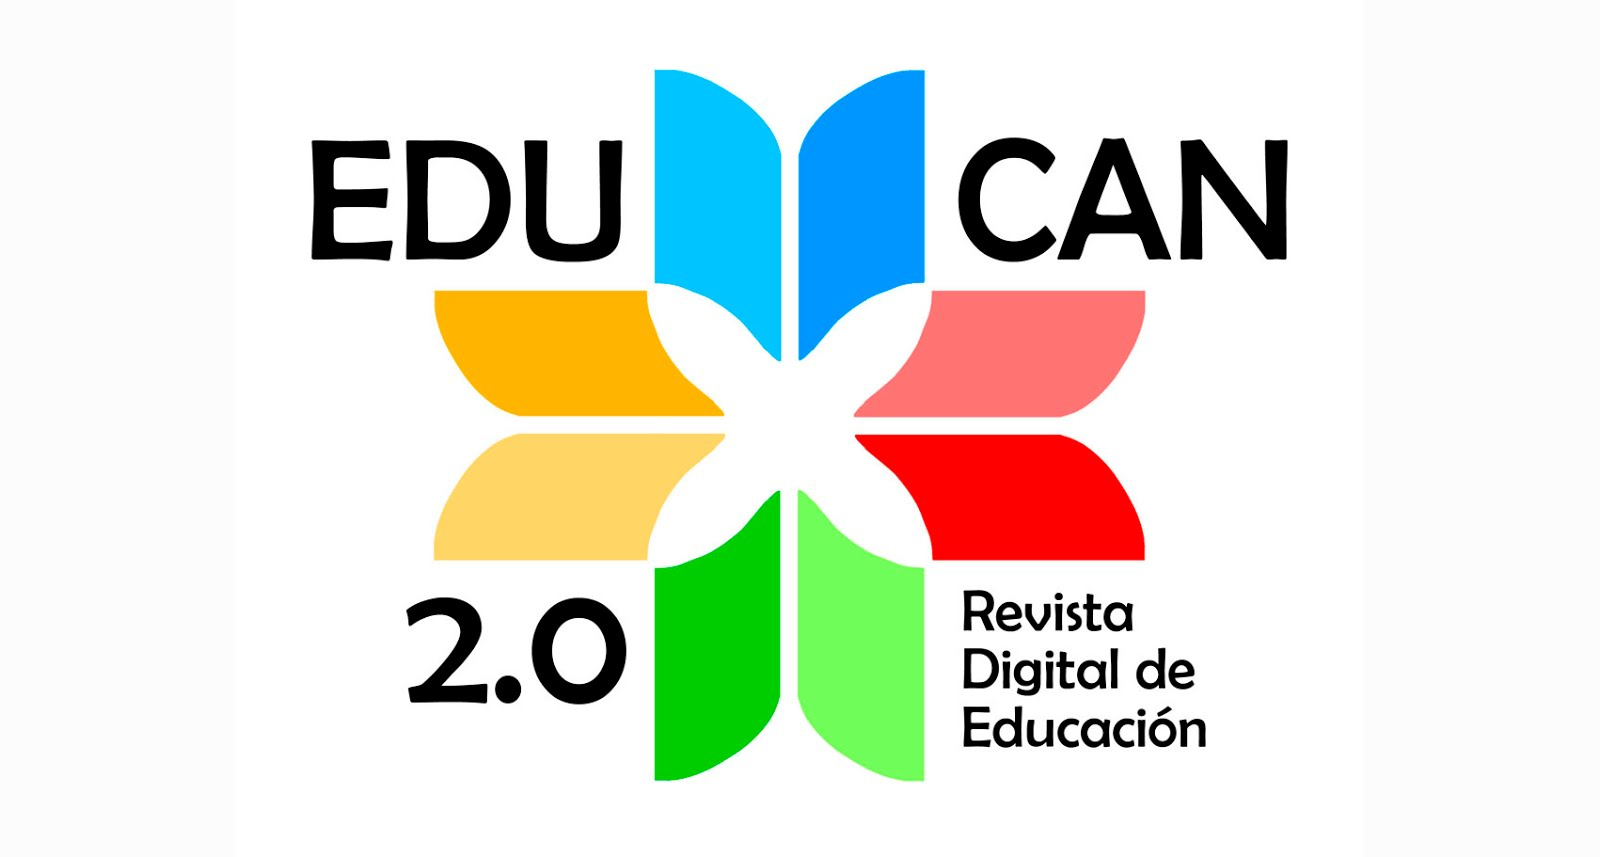 EduCan2.0 Revista Digital de Educación